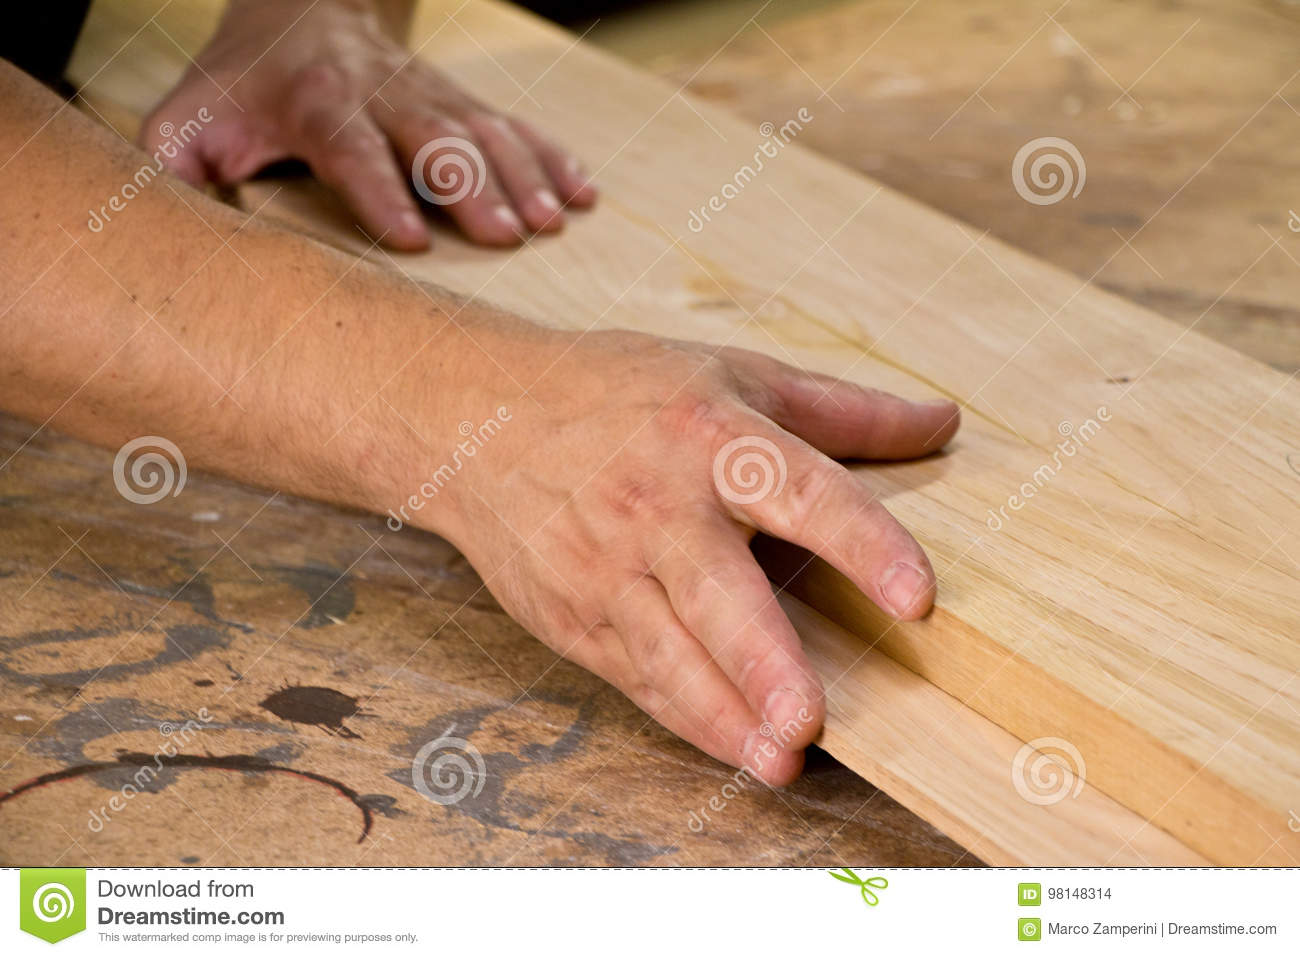 Wood joining stock photo. Image of texture, joiner, hand - 98148314